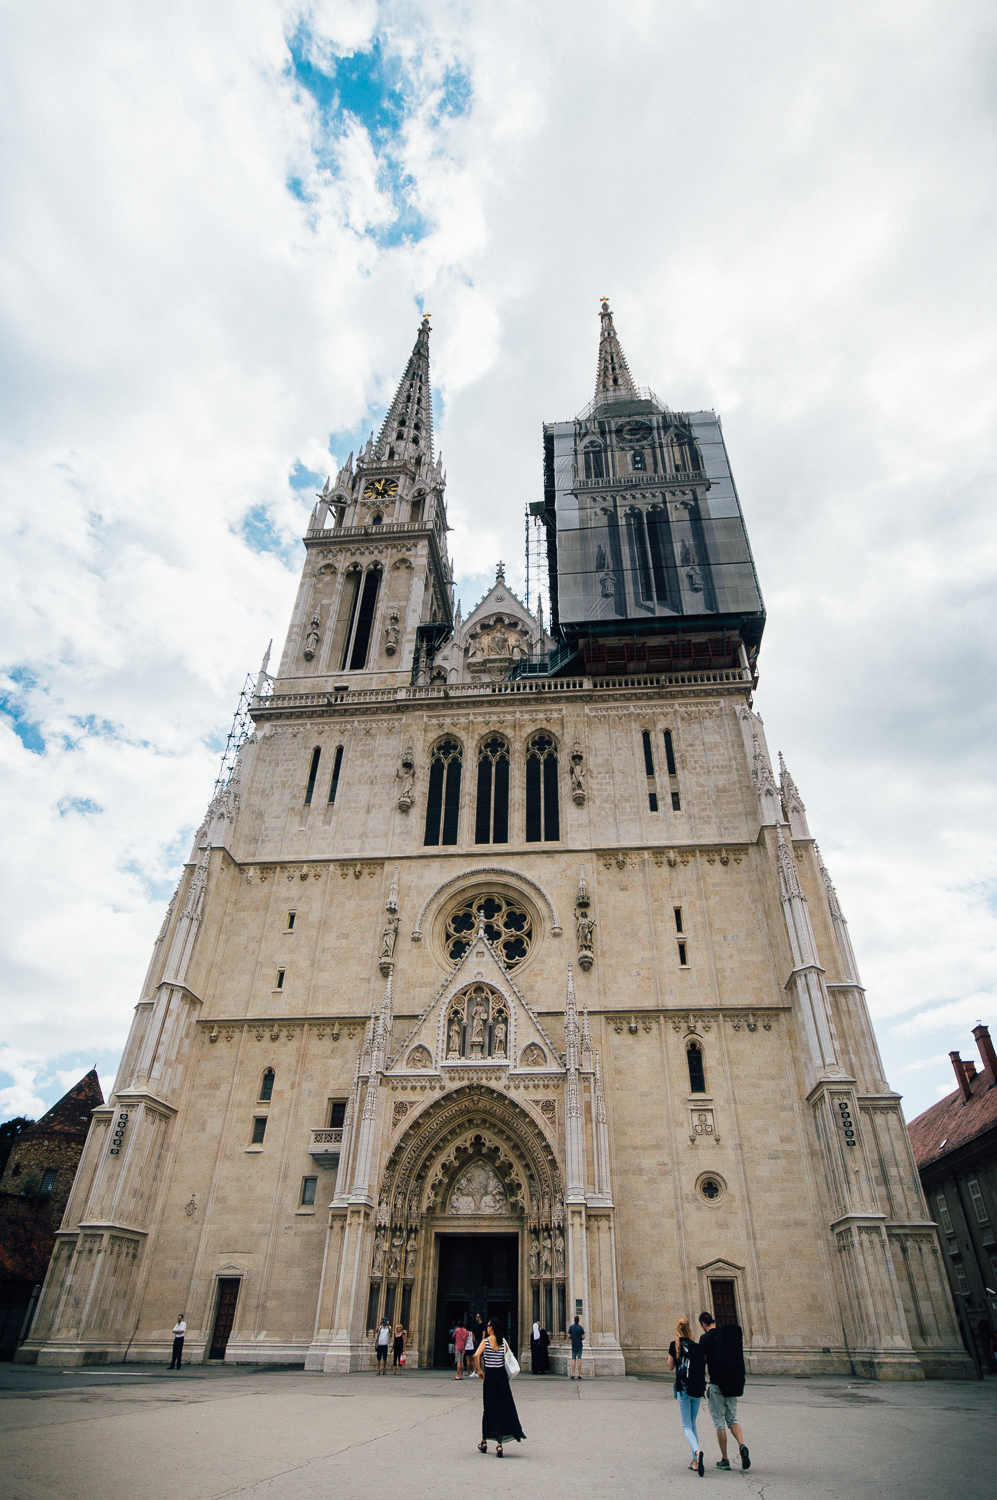 Cathedral of the Assumption of the Blessed Virgin Mary (longest Cathedral name ever?). This Cathedral is always under construction because it is made of limestone, which is not the sturdiest in weather conditions. It's also the tallest building in Croatia.